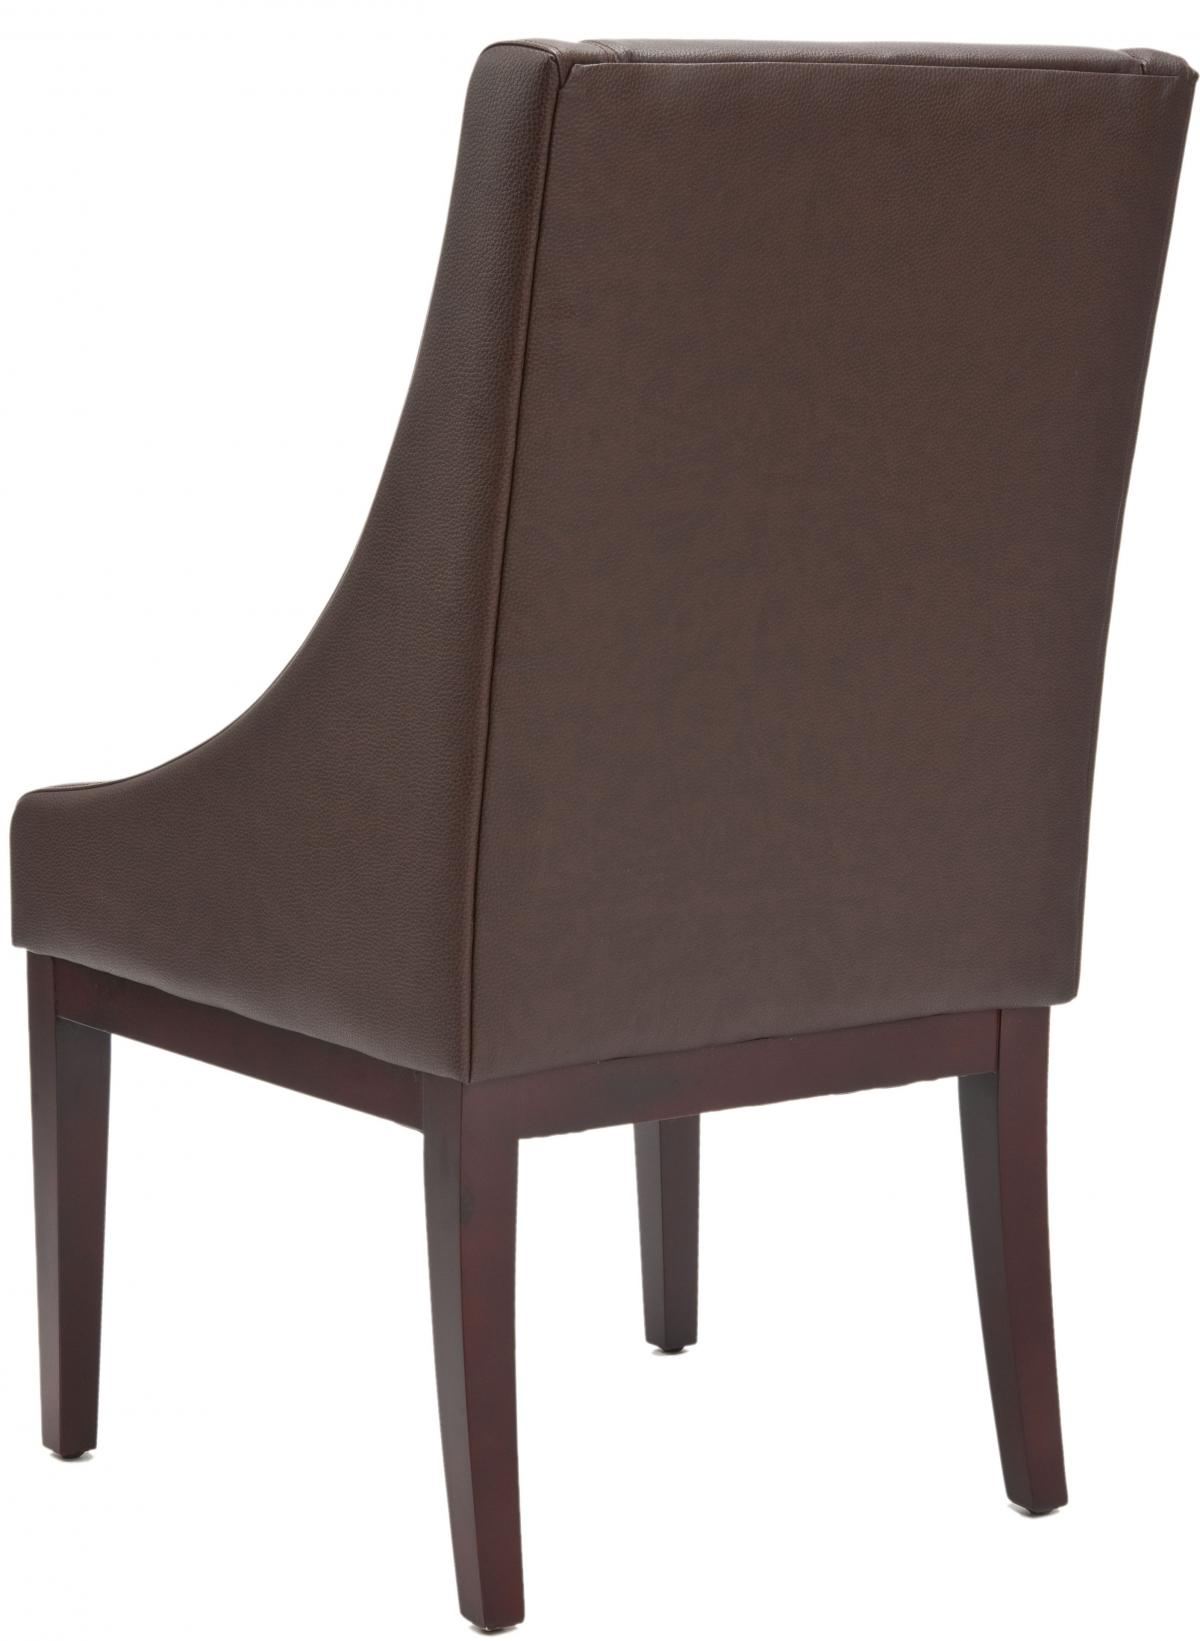 safavieh mcr4500c sloping chair brown dining chairs. Black Bedroom Furniture Sets. Home Design Ideas